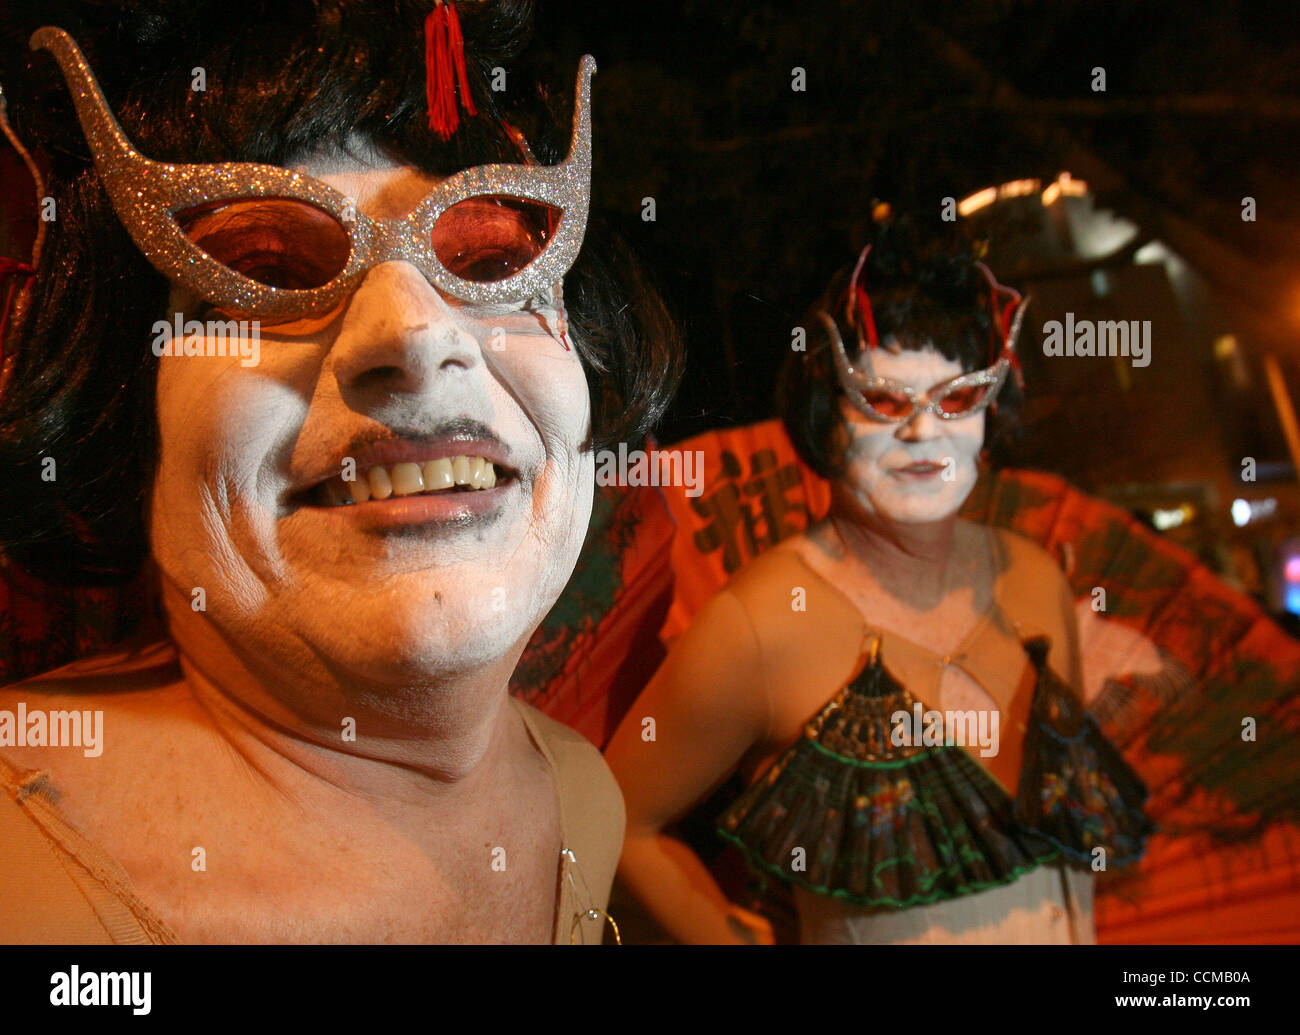 the world famous costume party on santa monica boulevard the celebration is the largest adult outdoor halloween